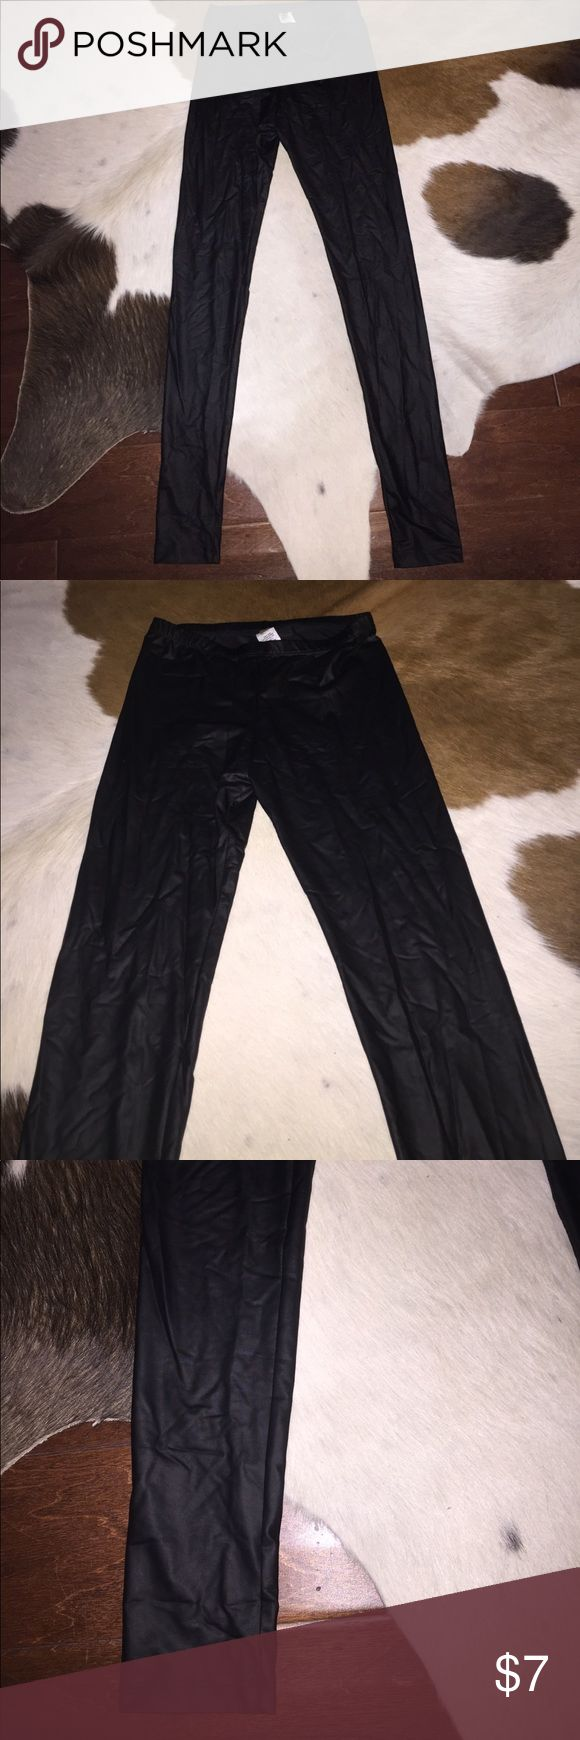 Never Worn Faux Leather Leggings - Size Medium Cherish NWOT Faux Leather Leggings. Size Medium. Fits me. I am a size 6/8. Skinny style. All items have been pre owned, lightly used, NWOT or NWT. They come from a smoke free home. I can not promise items are in perfect condition but they have been cared for extremely well. If there are issues please read the description and look at the images posted. If you have questions please ask. Thank you! Cherish Pants Leggings